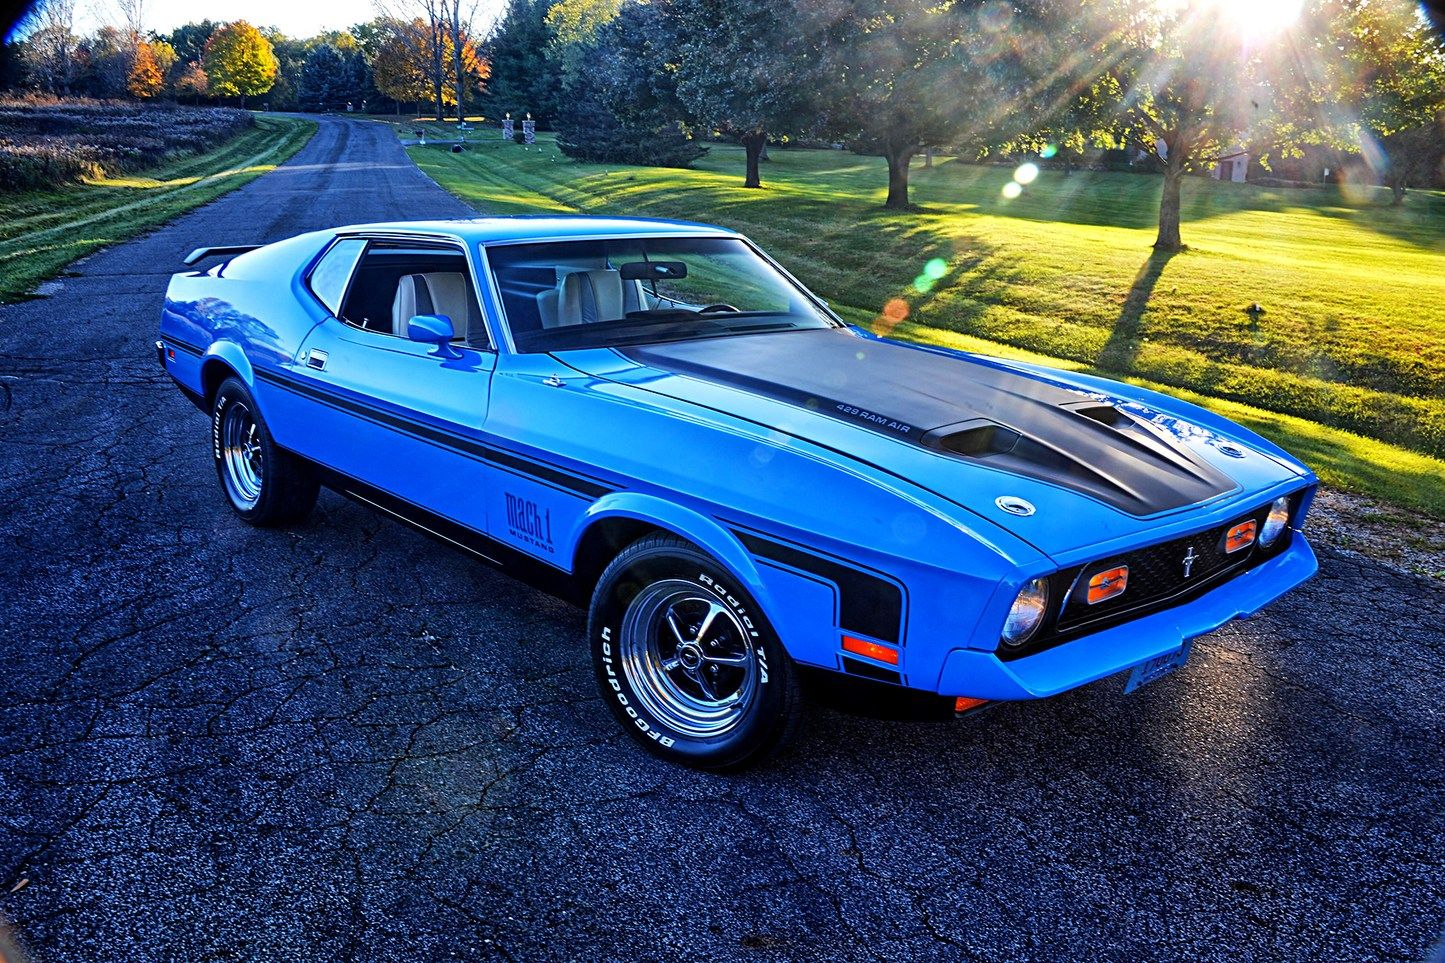 This Grabber Blue 1971 Mach 1 Cobra Jet Has Been Years In The Making Ford Mustang Mustang 1971 Mach 1